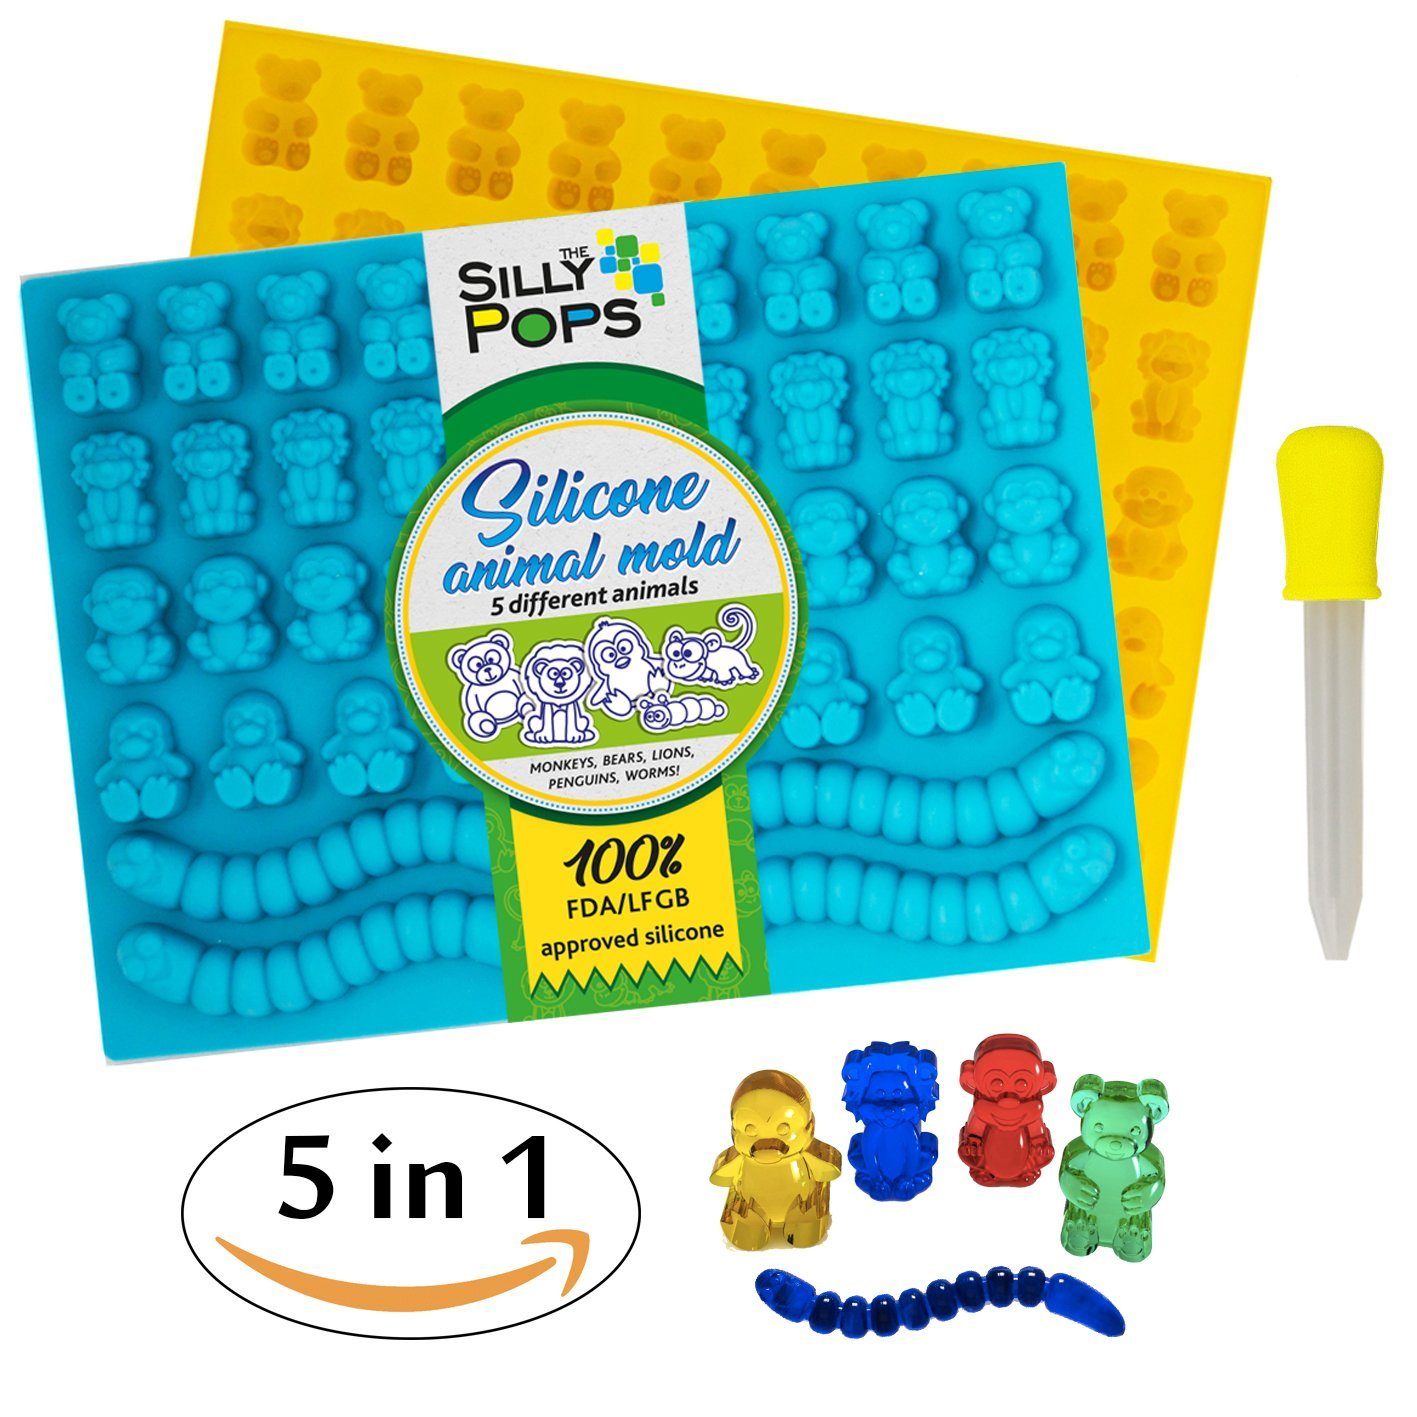 Gummy Bear Mold Bpa Free Silicone (Yellow, Blue) - Set of 2 for 86 Candies - 5 Different Types of Animals - Dropper Included - Candy Molds, Gummy Worm Mold, Chocolate Molds, Gelatin Molds, Ice Cube by The Silly Pops